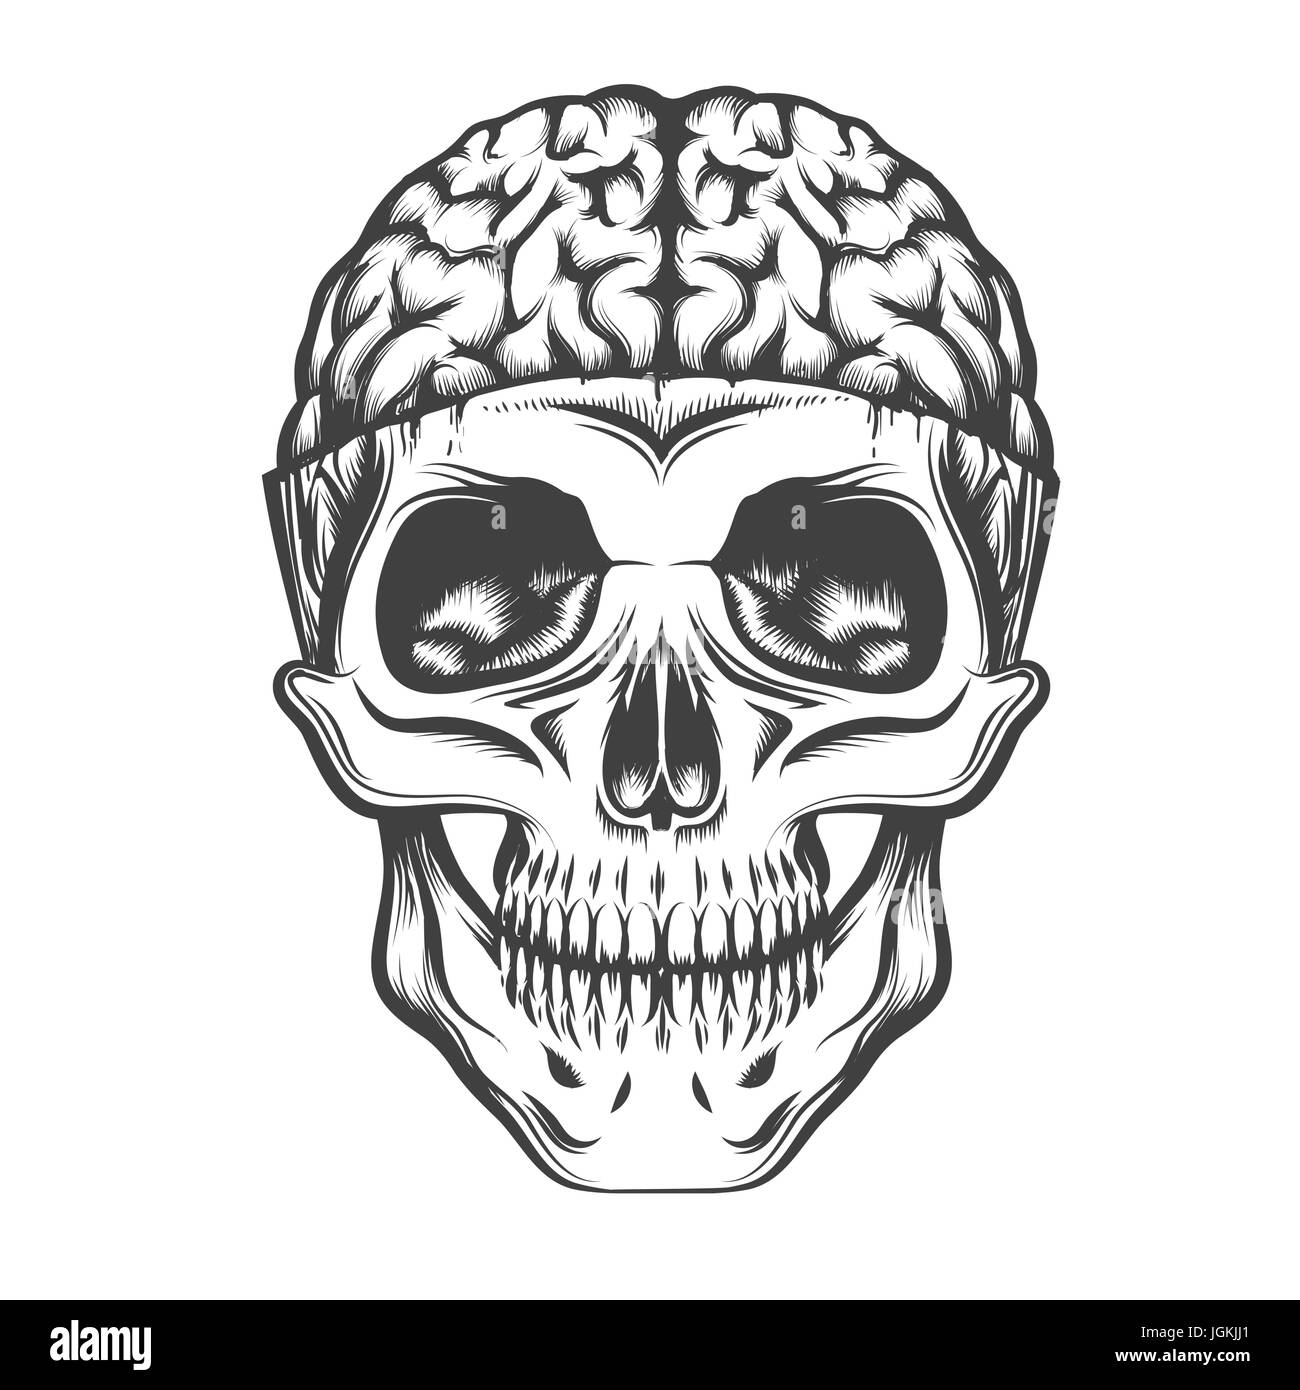 c4fd8d087429f Human Skull with open brain. Vector illustration in tattoo style. - Stock  Image